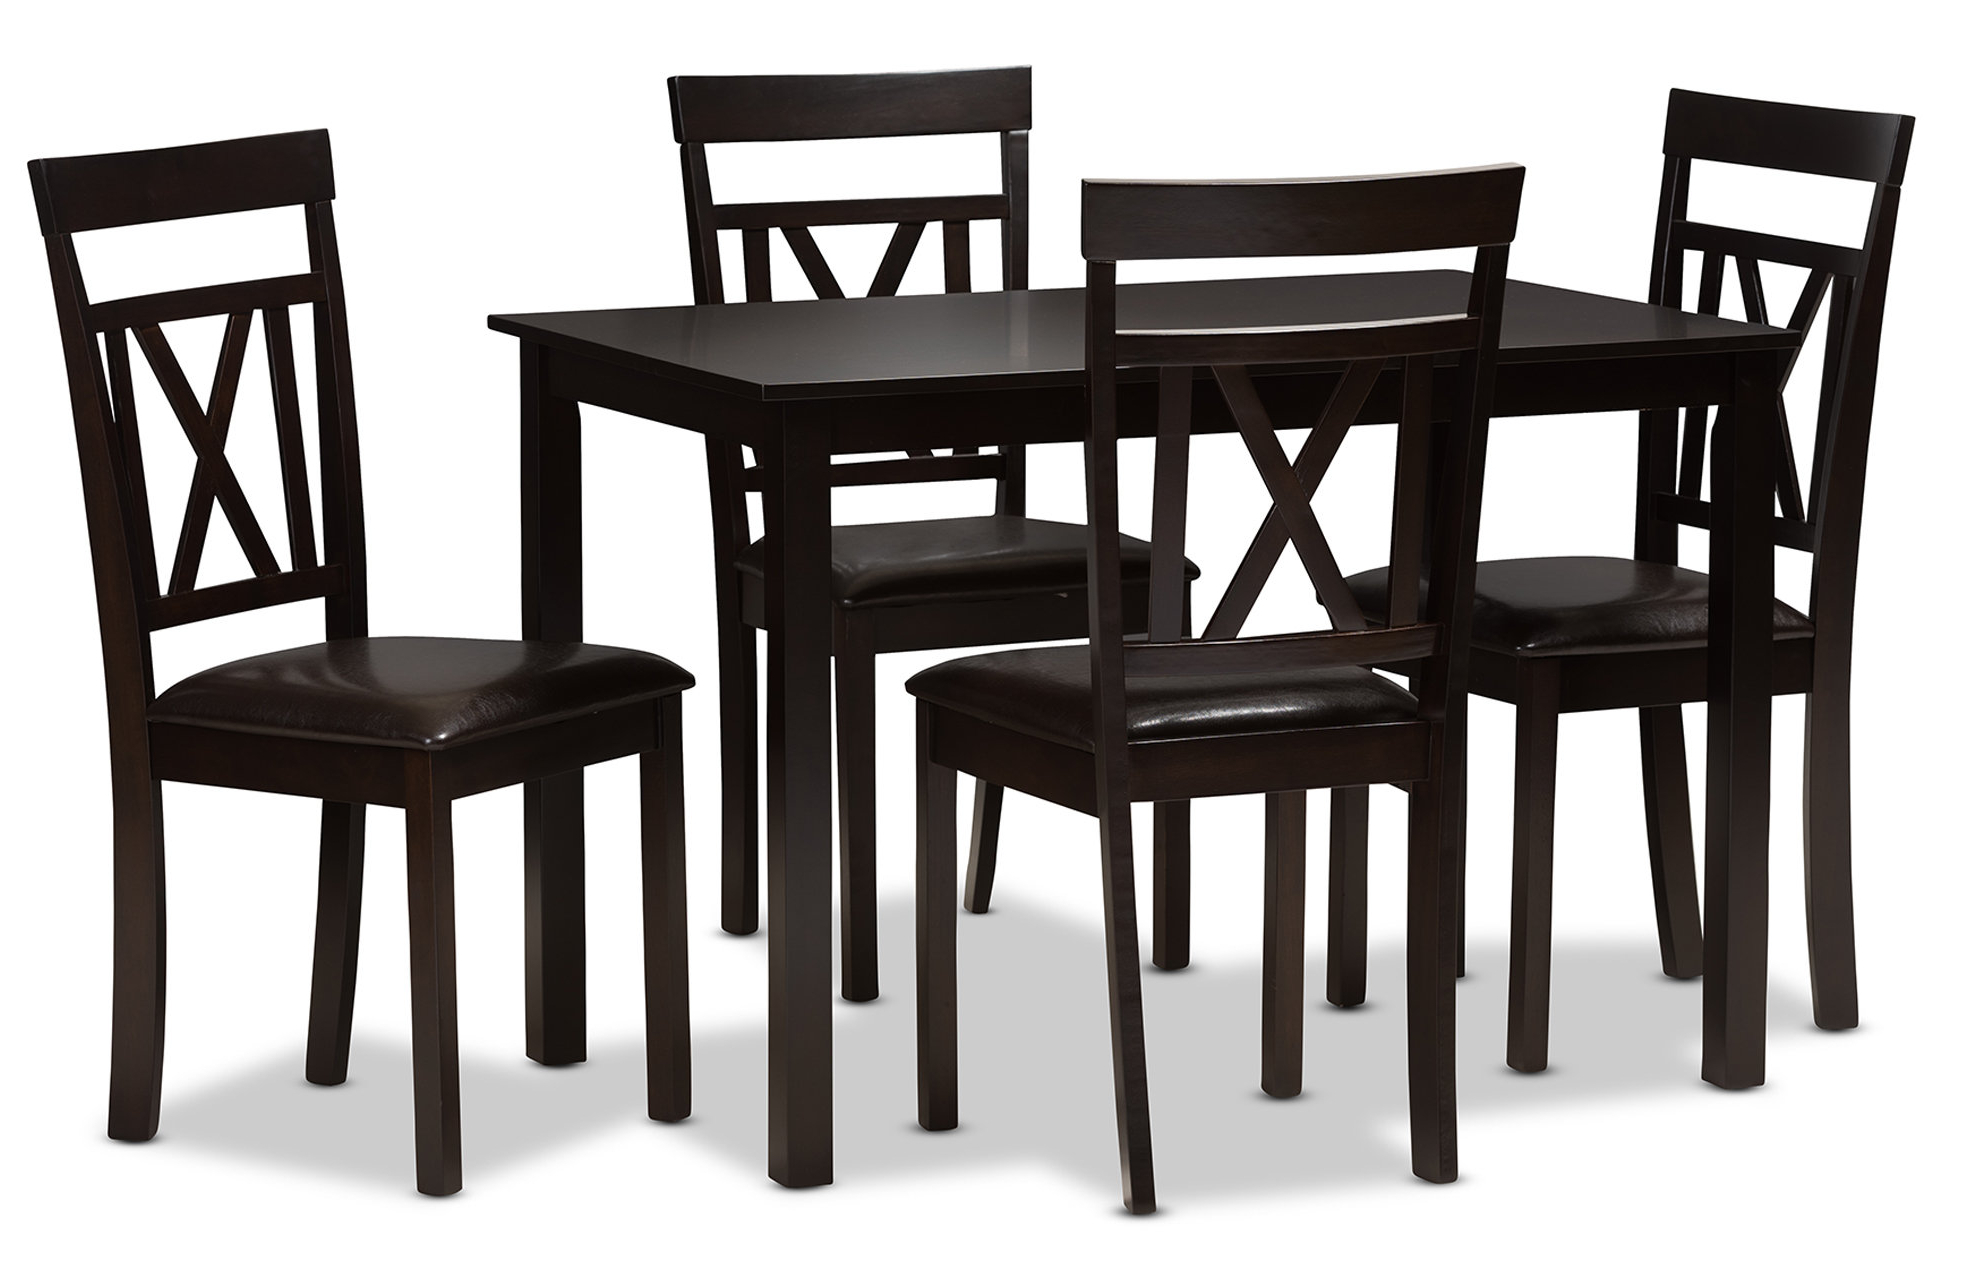 Whitbey Modern And Contemporary 5 Piece Breakfast Nook Dining Set With Regard To 2018 5 Piece Breakfast Nook Dining Sets (View 20 of 20)